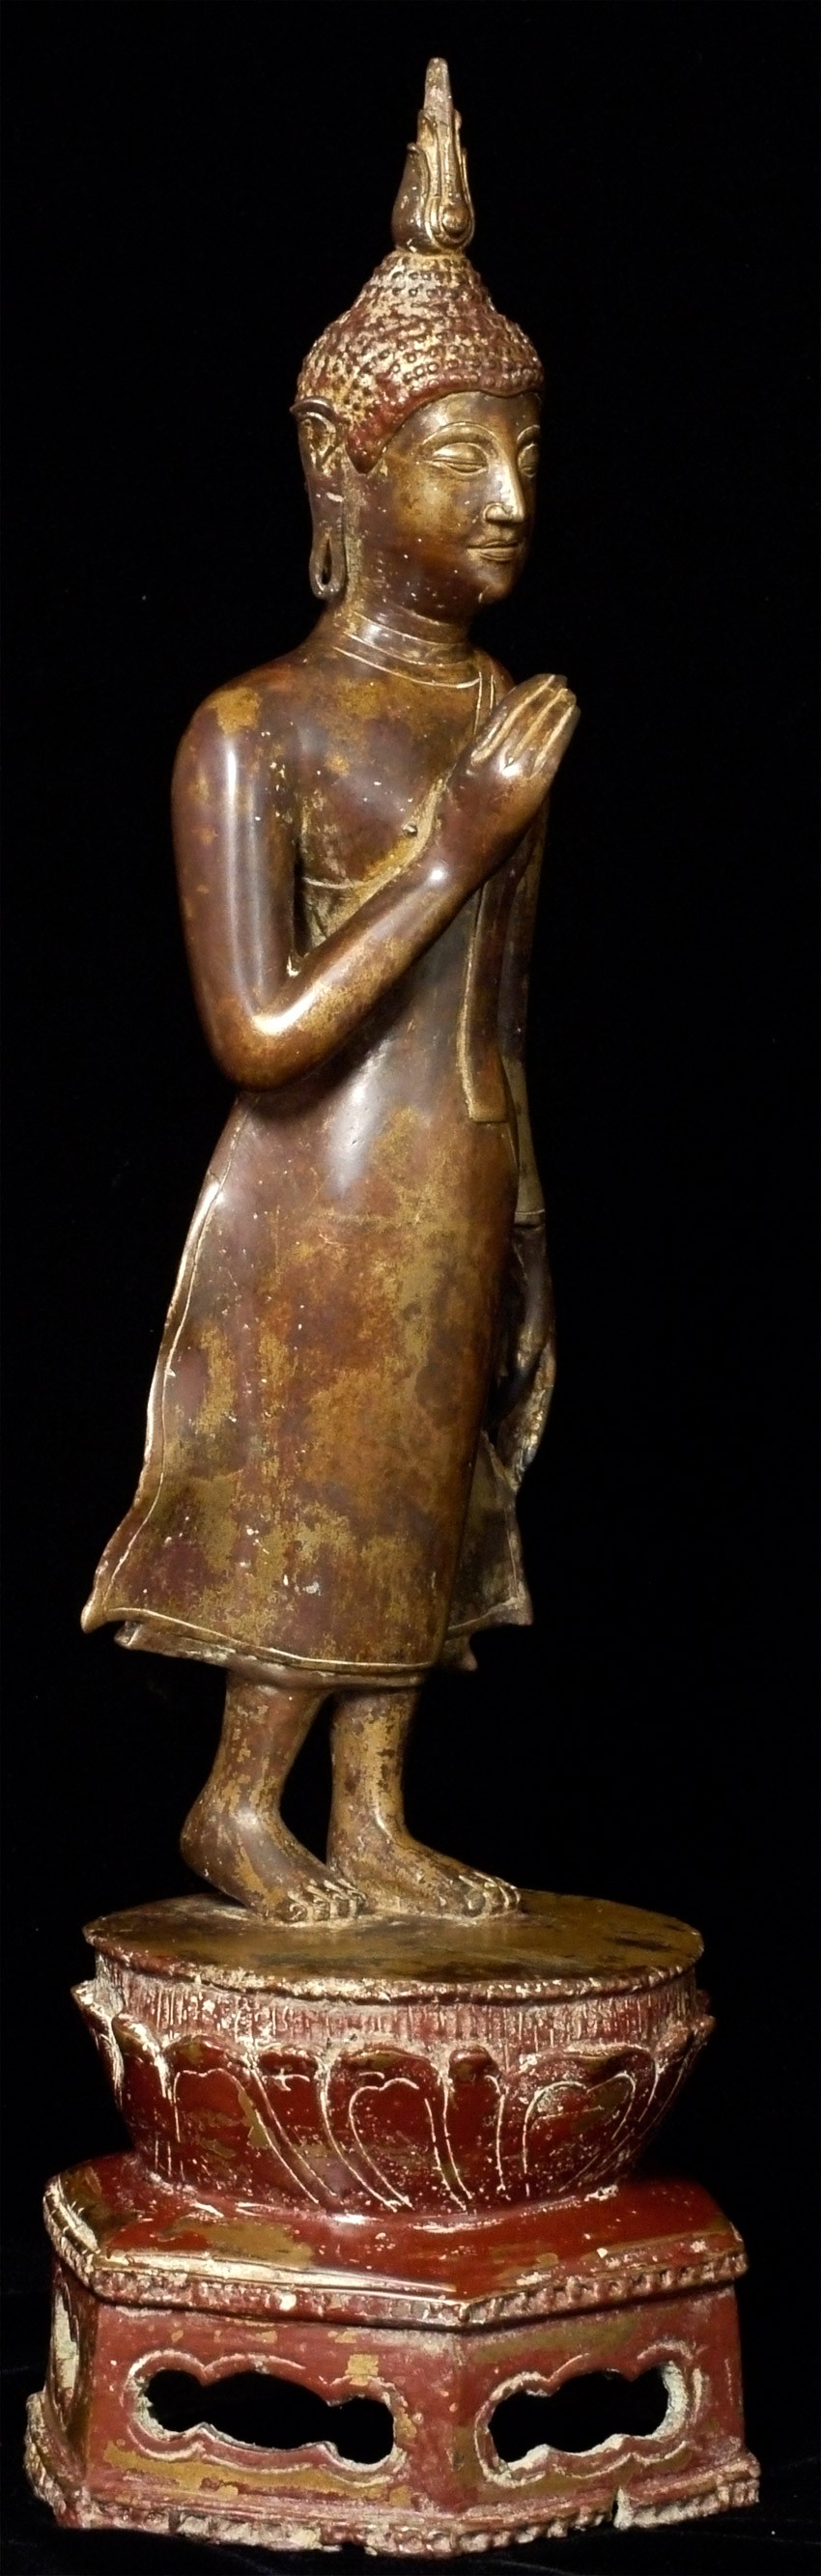 Antique 15-16th century walking Sukhothai Buddha statue from Thailand made from Bronze